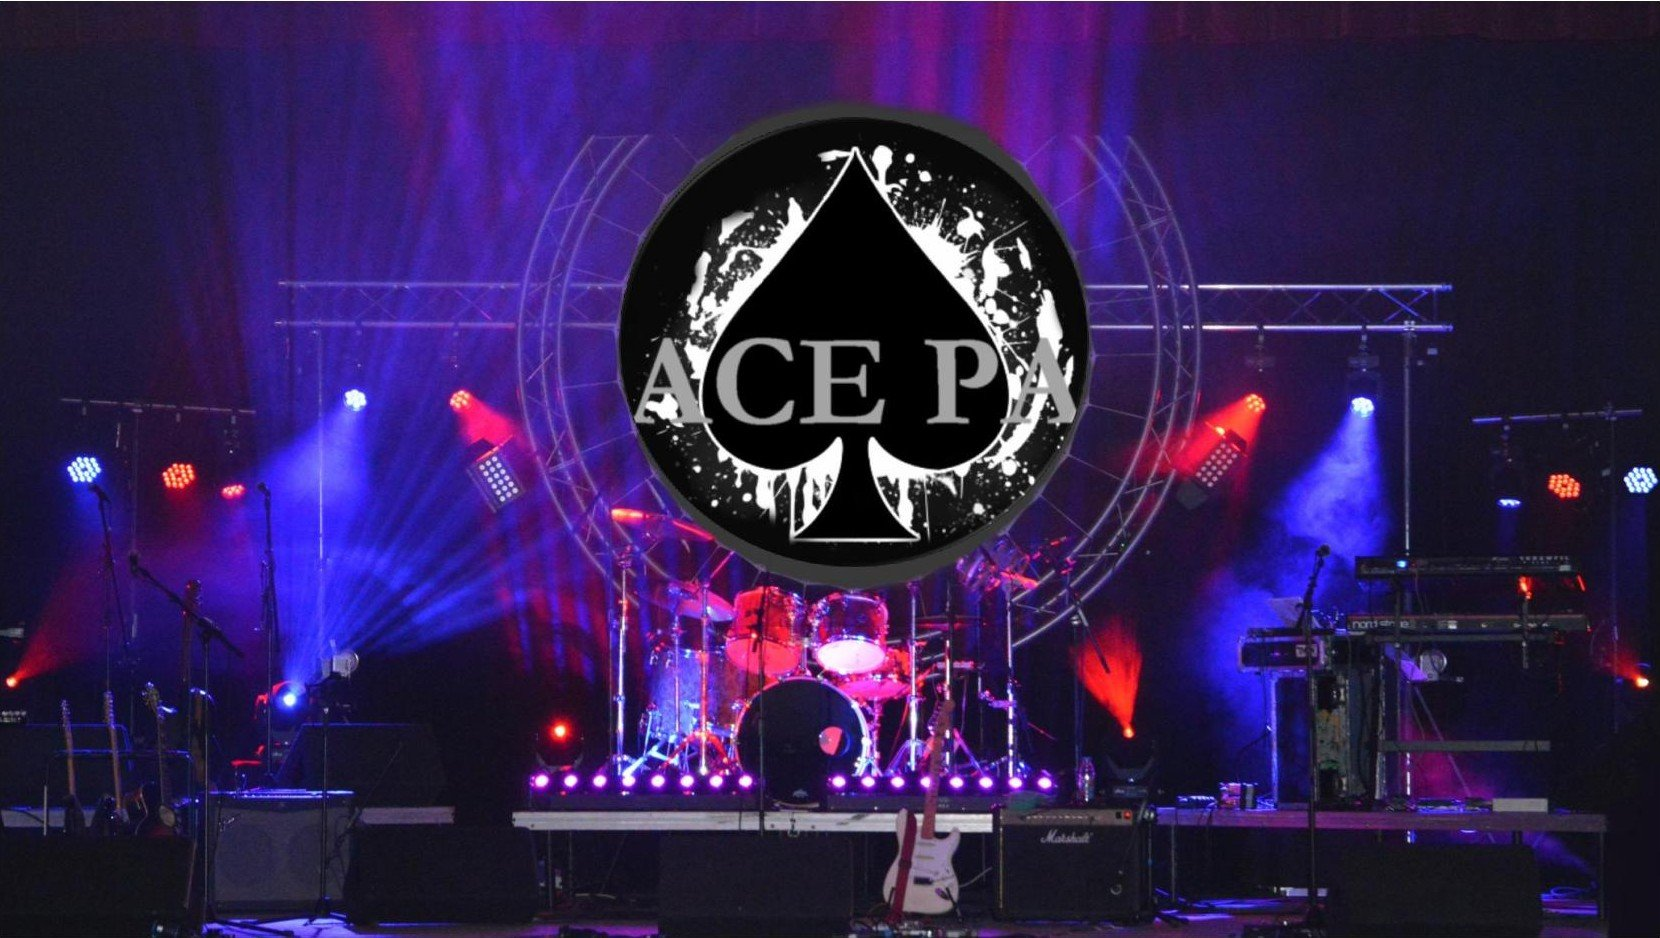 ACE-PA-Floyd-lights-logo.jpg